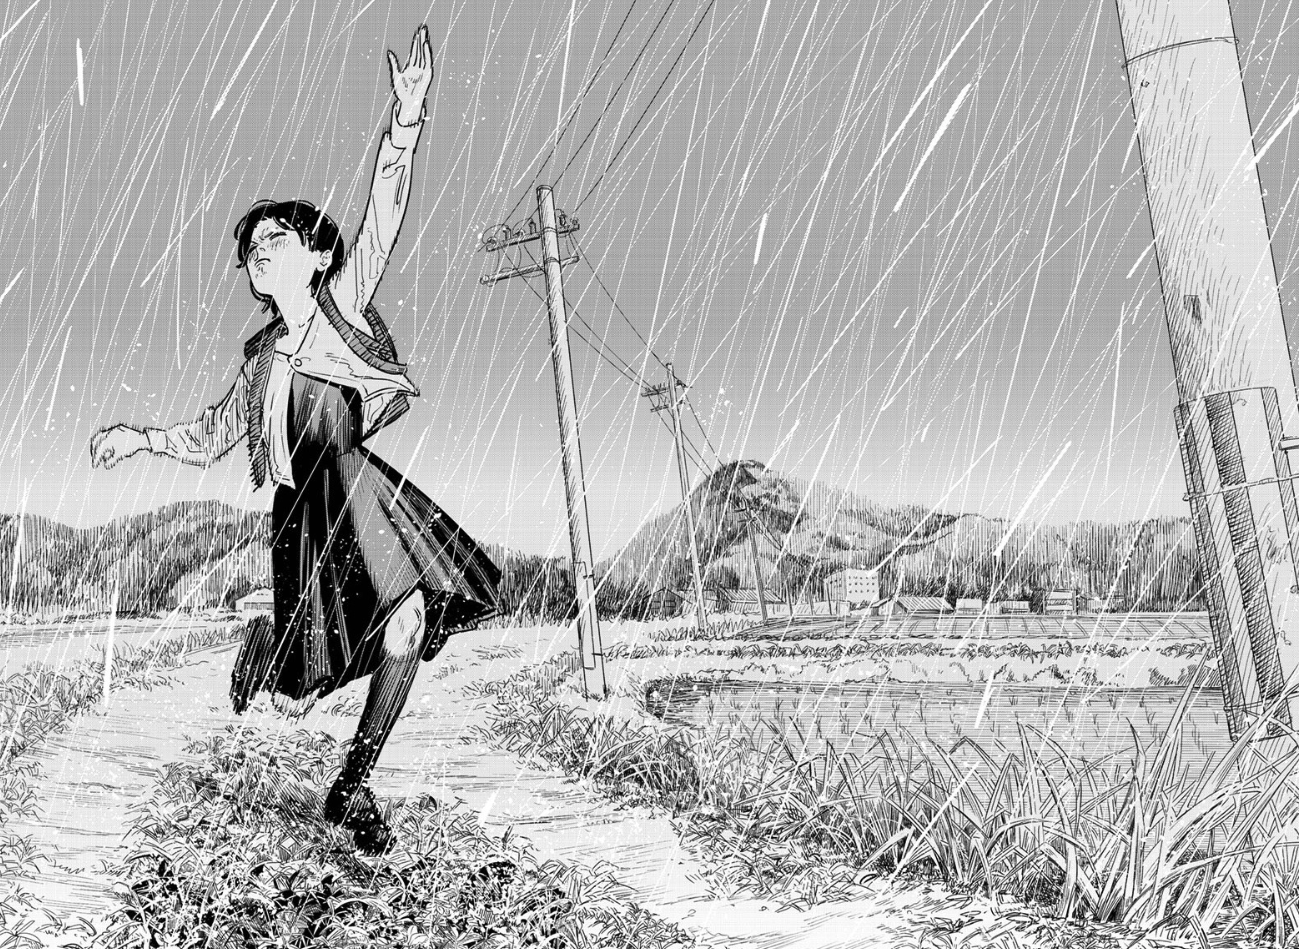 a girl reaching up to the sky as it rains